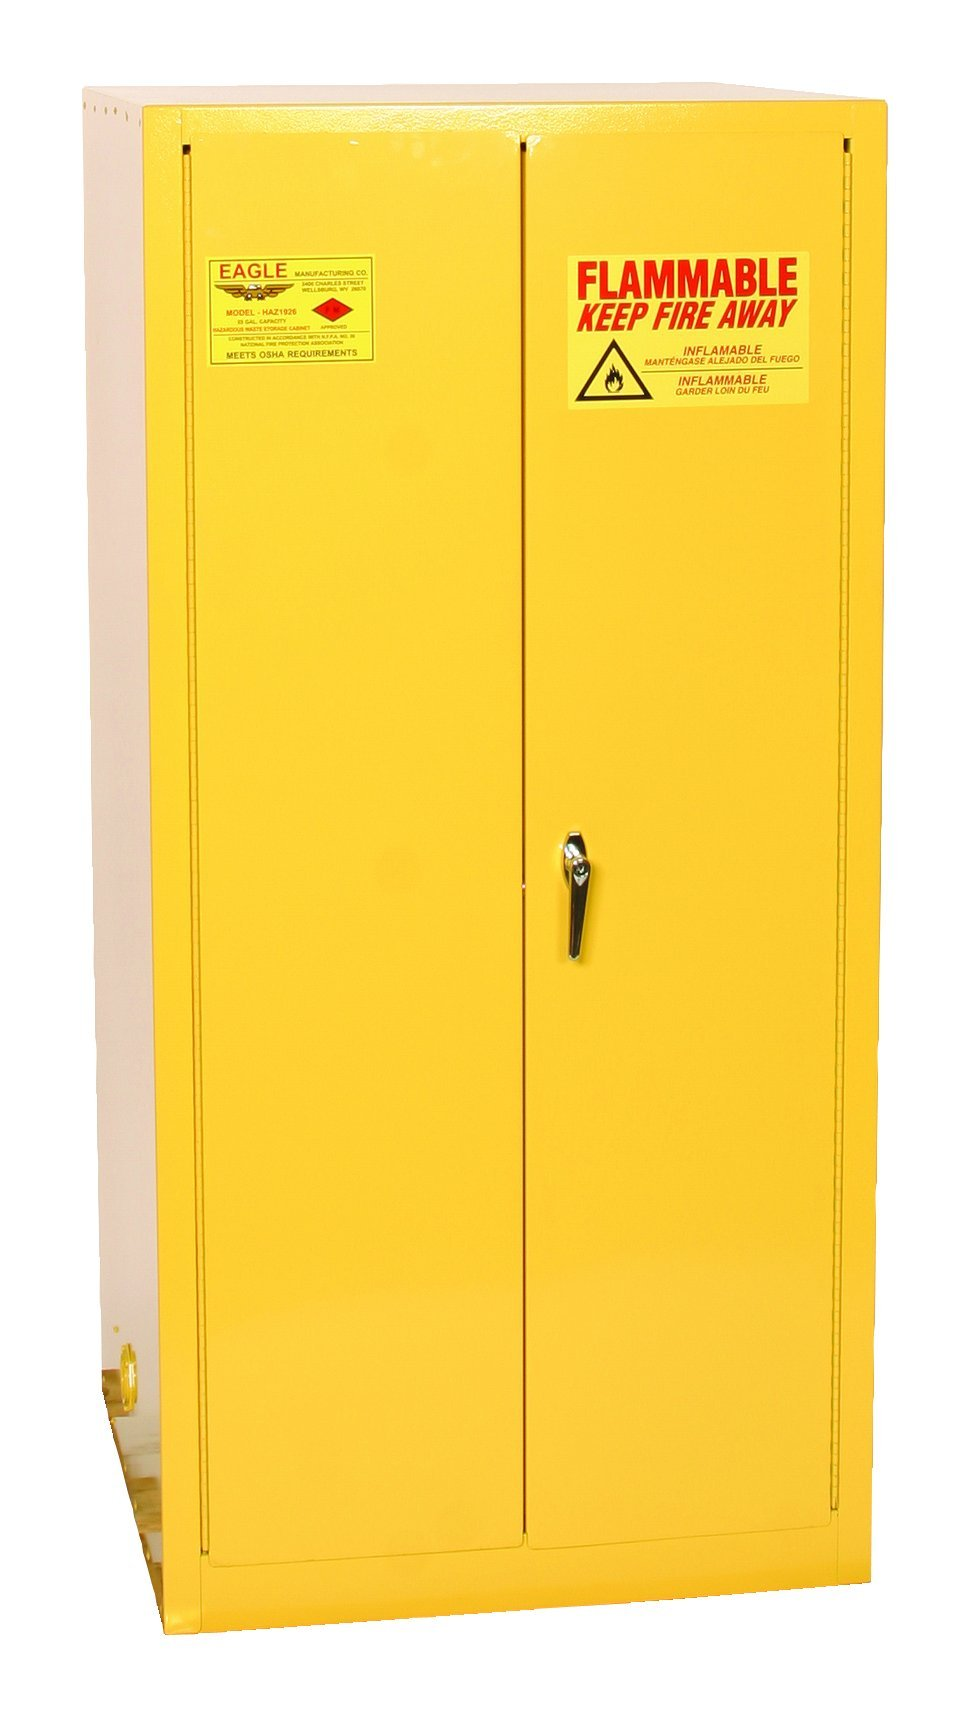 Eagle 1926 Drum Storage Safety Cabinet, 2 Door Manual Close, 55 Gallon, 65'' Height, 31-1/4'' Width, 31-1/4'' Depth, Steel, Yellow